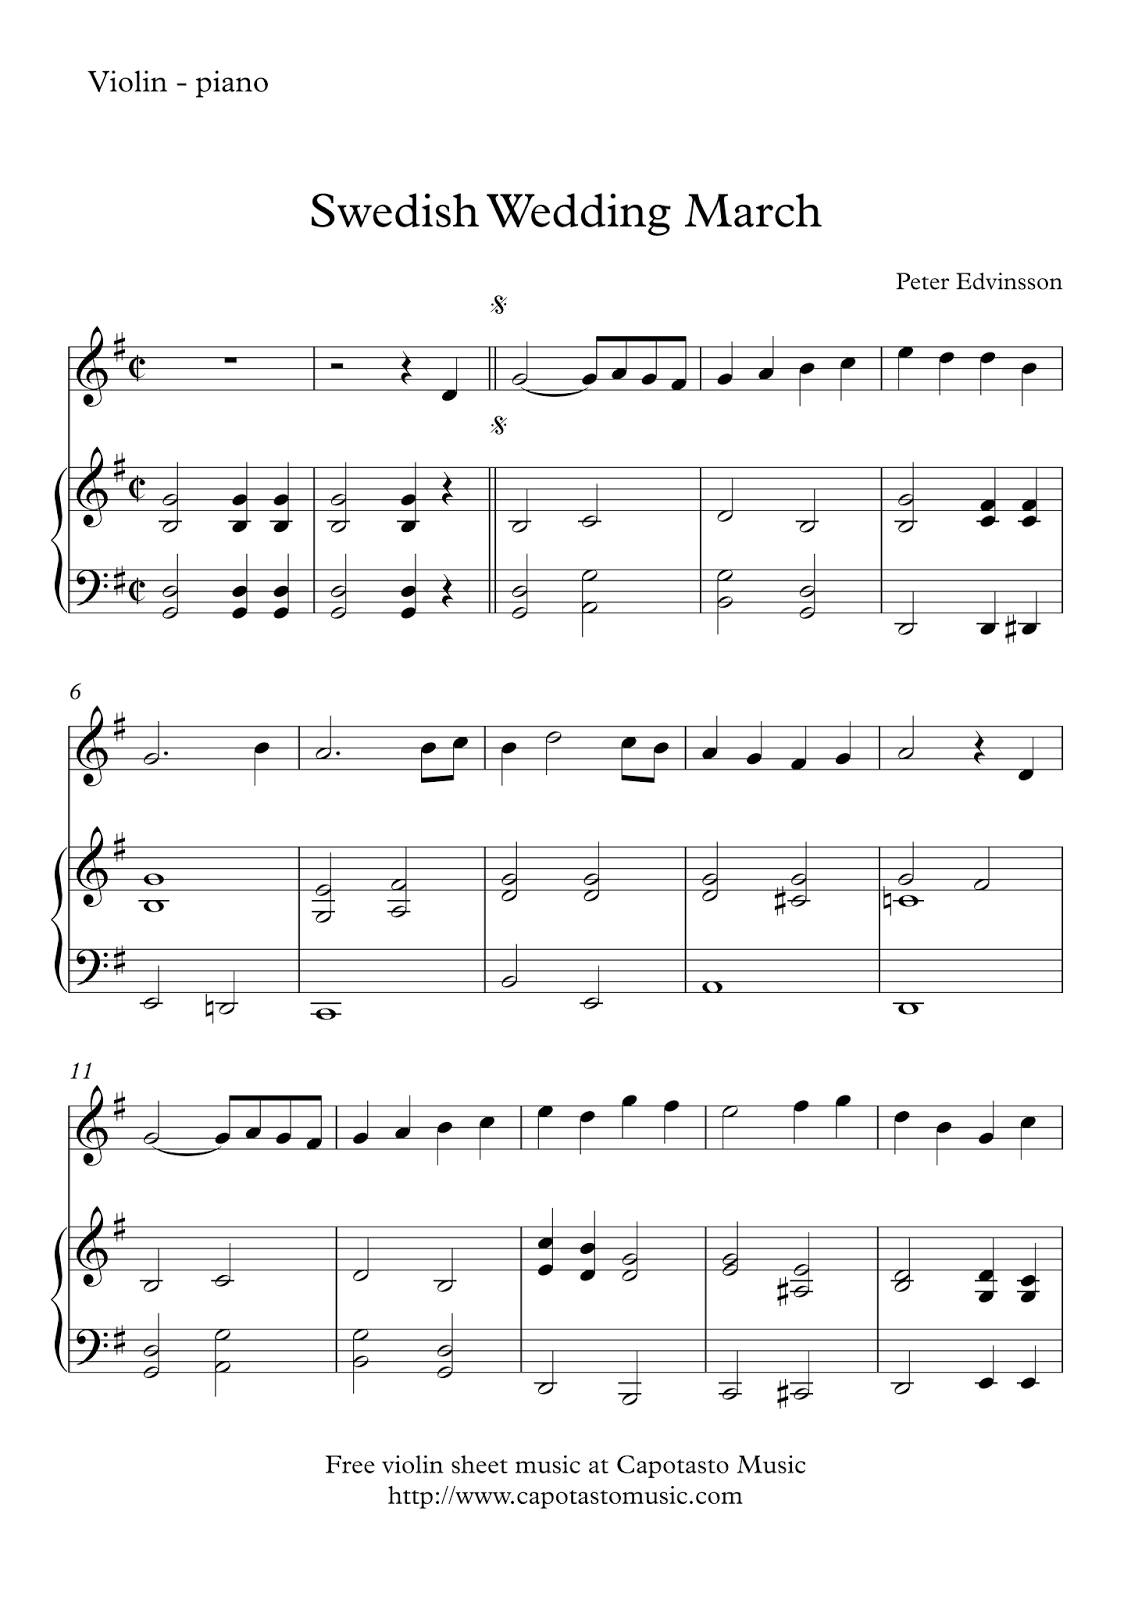 Free Violin And Piano Sheet Music